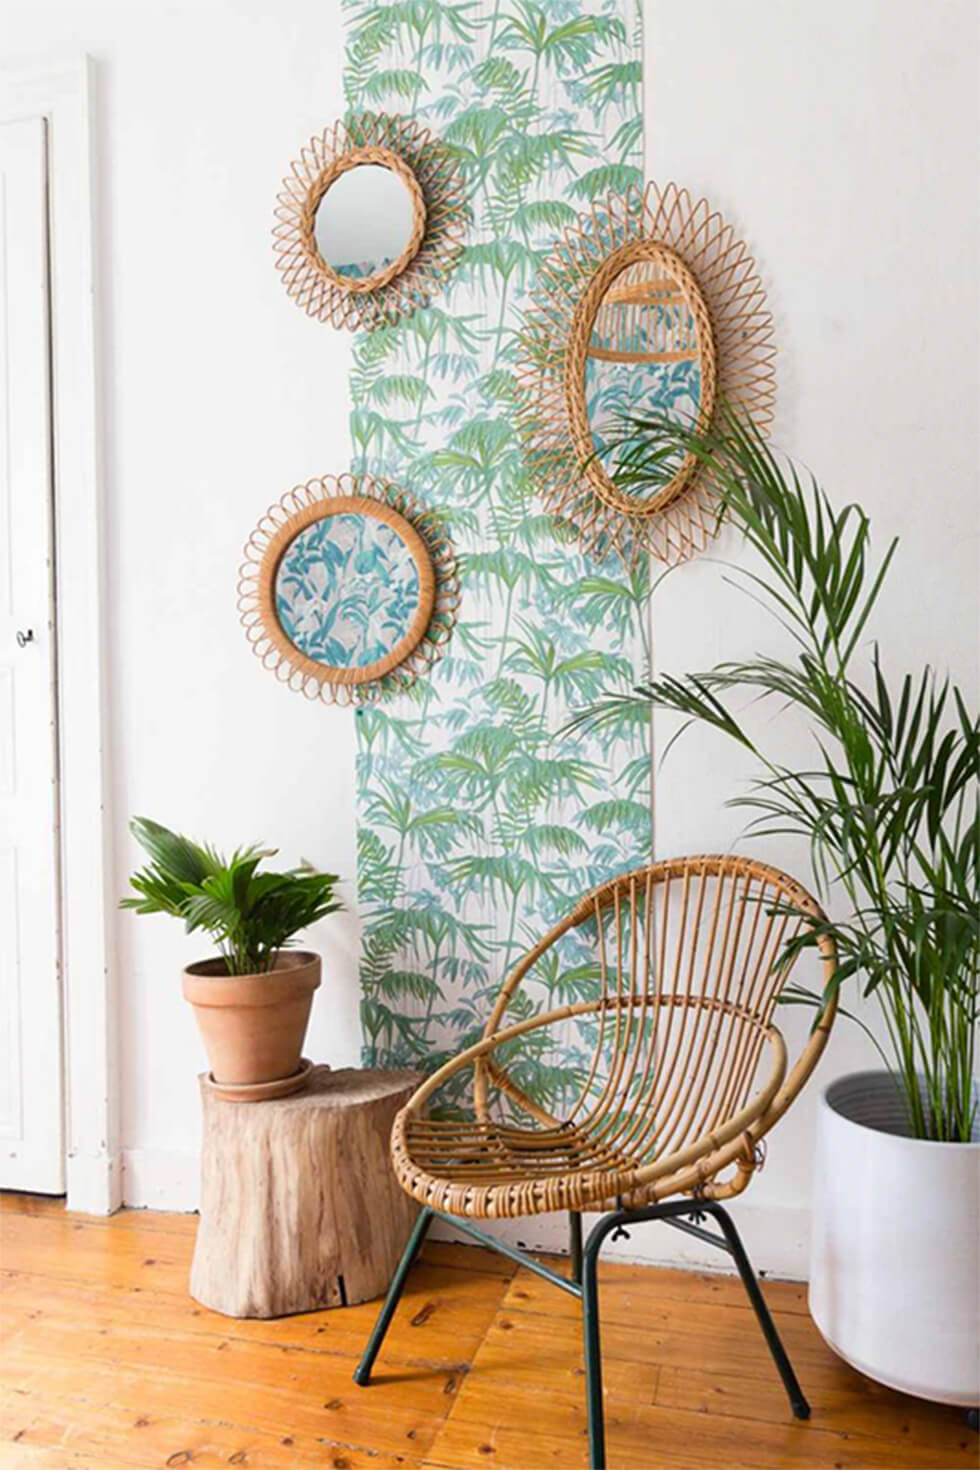 Rattan chair with bohemian wallpaper print